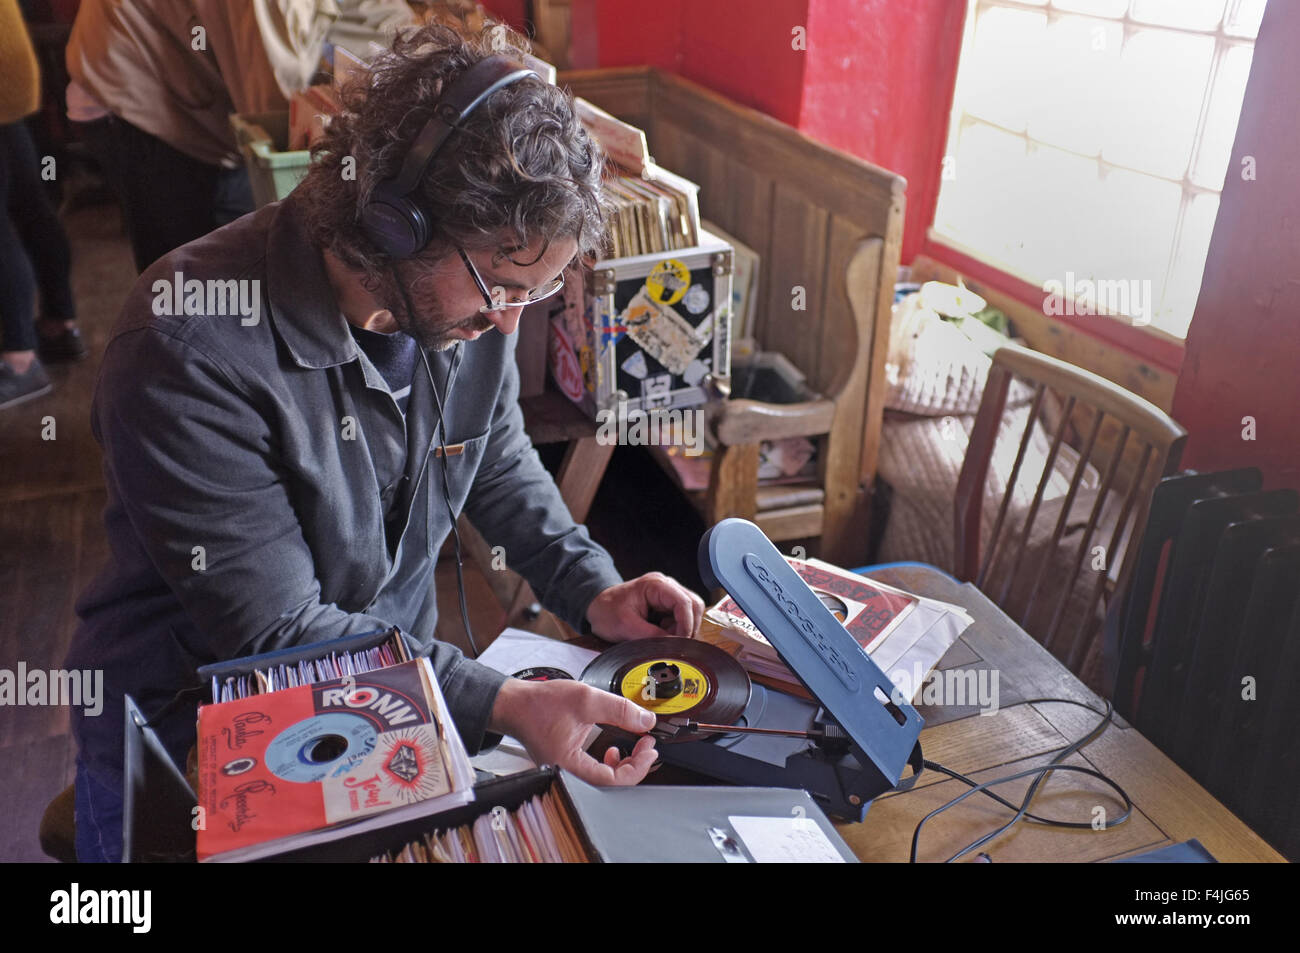 A record collector at a record fair looking through records. He checks out 45's (singles) on a portable turntable. - Stock Image